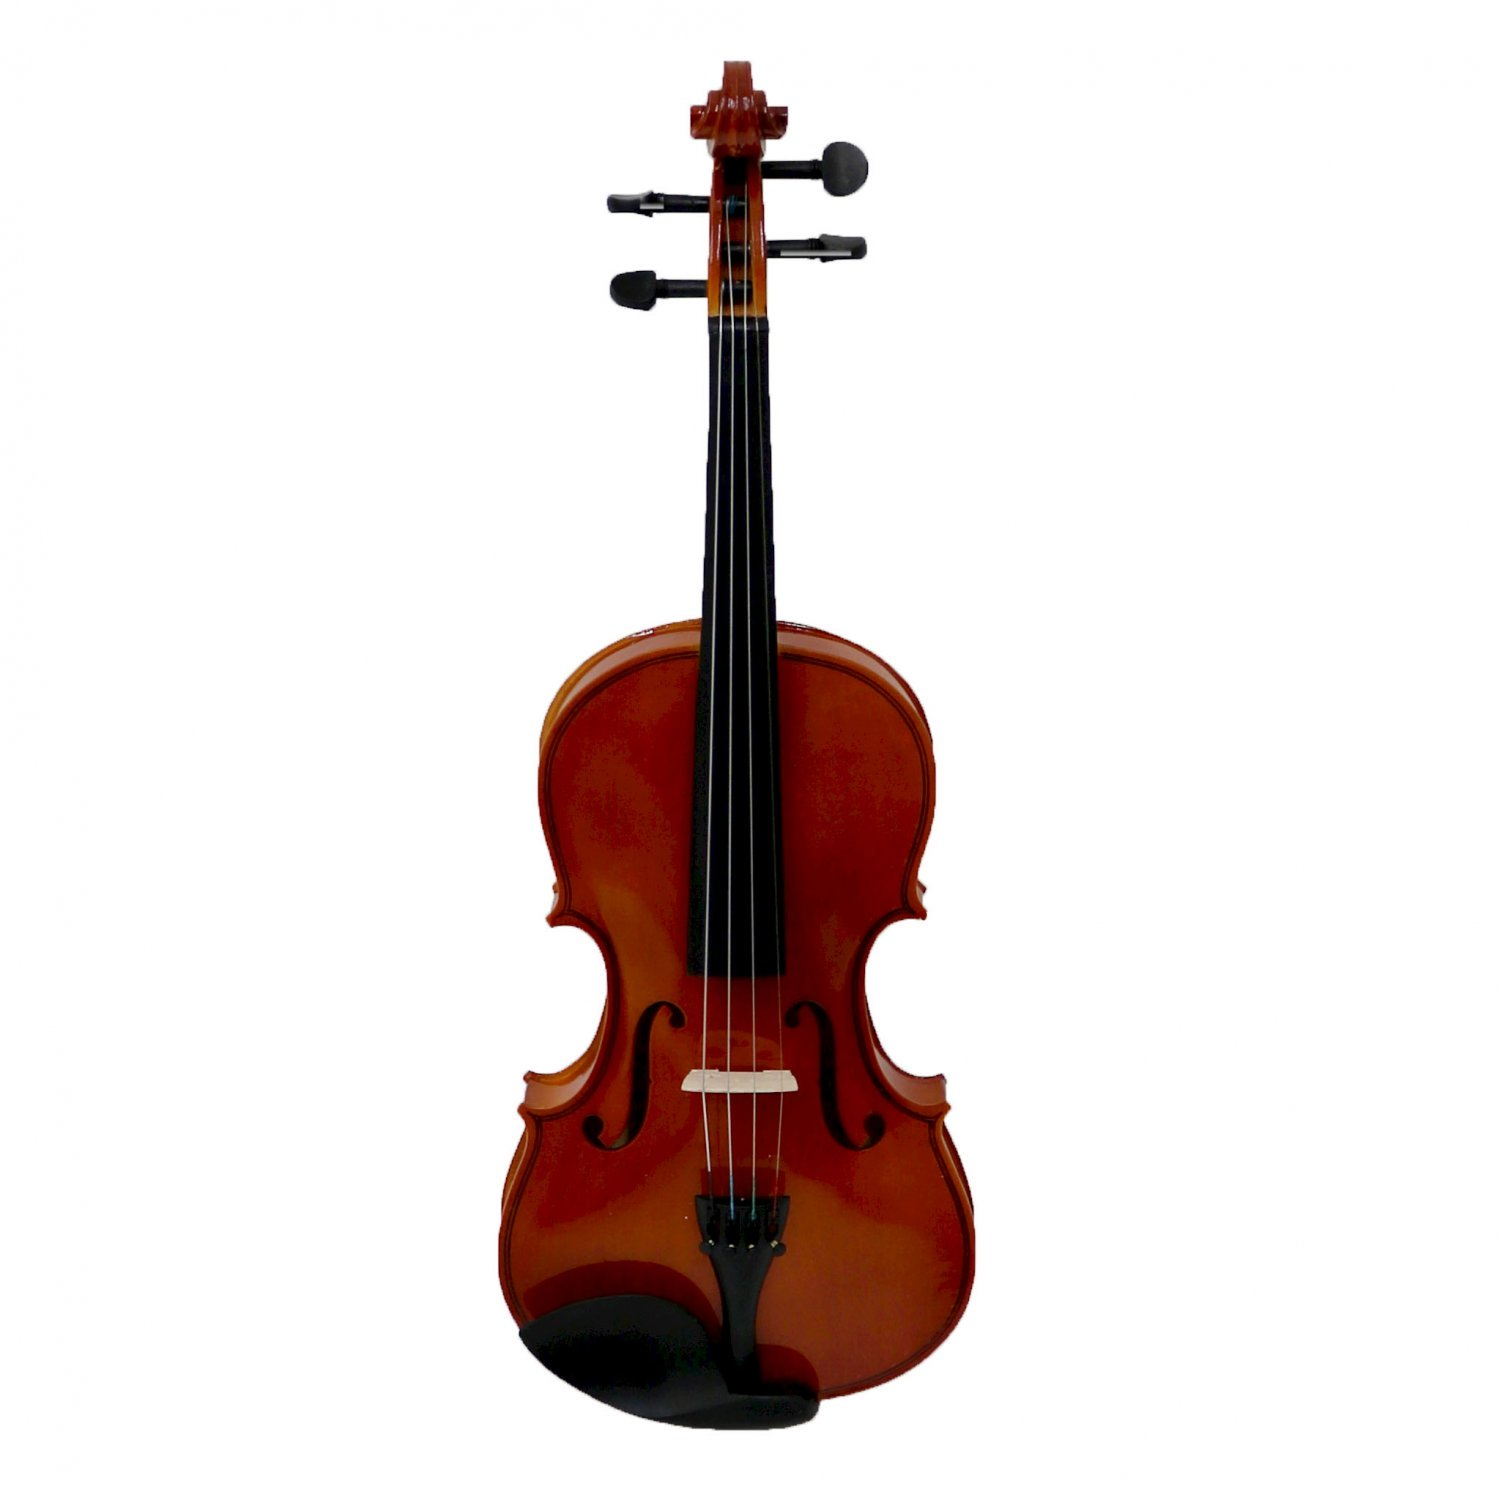 (RU43) Full Size 4/4 Acoustic Violin Set with Case, Bow & Rosin If you're learning to play v... - Image 2 of 2